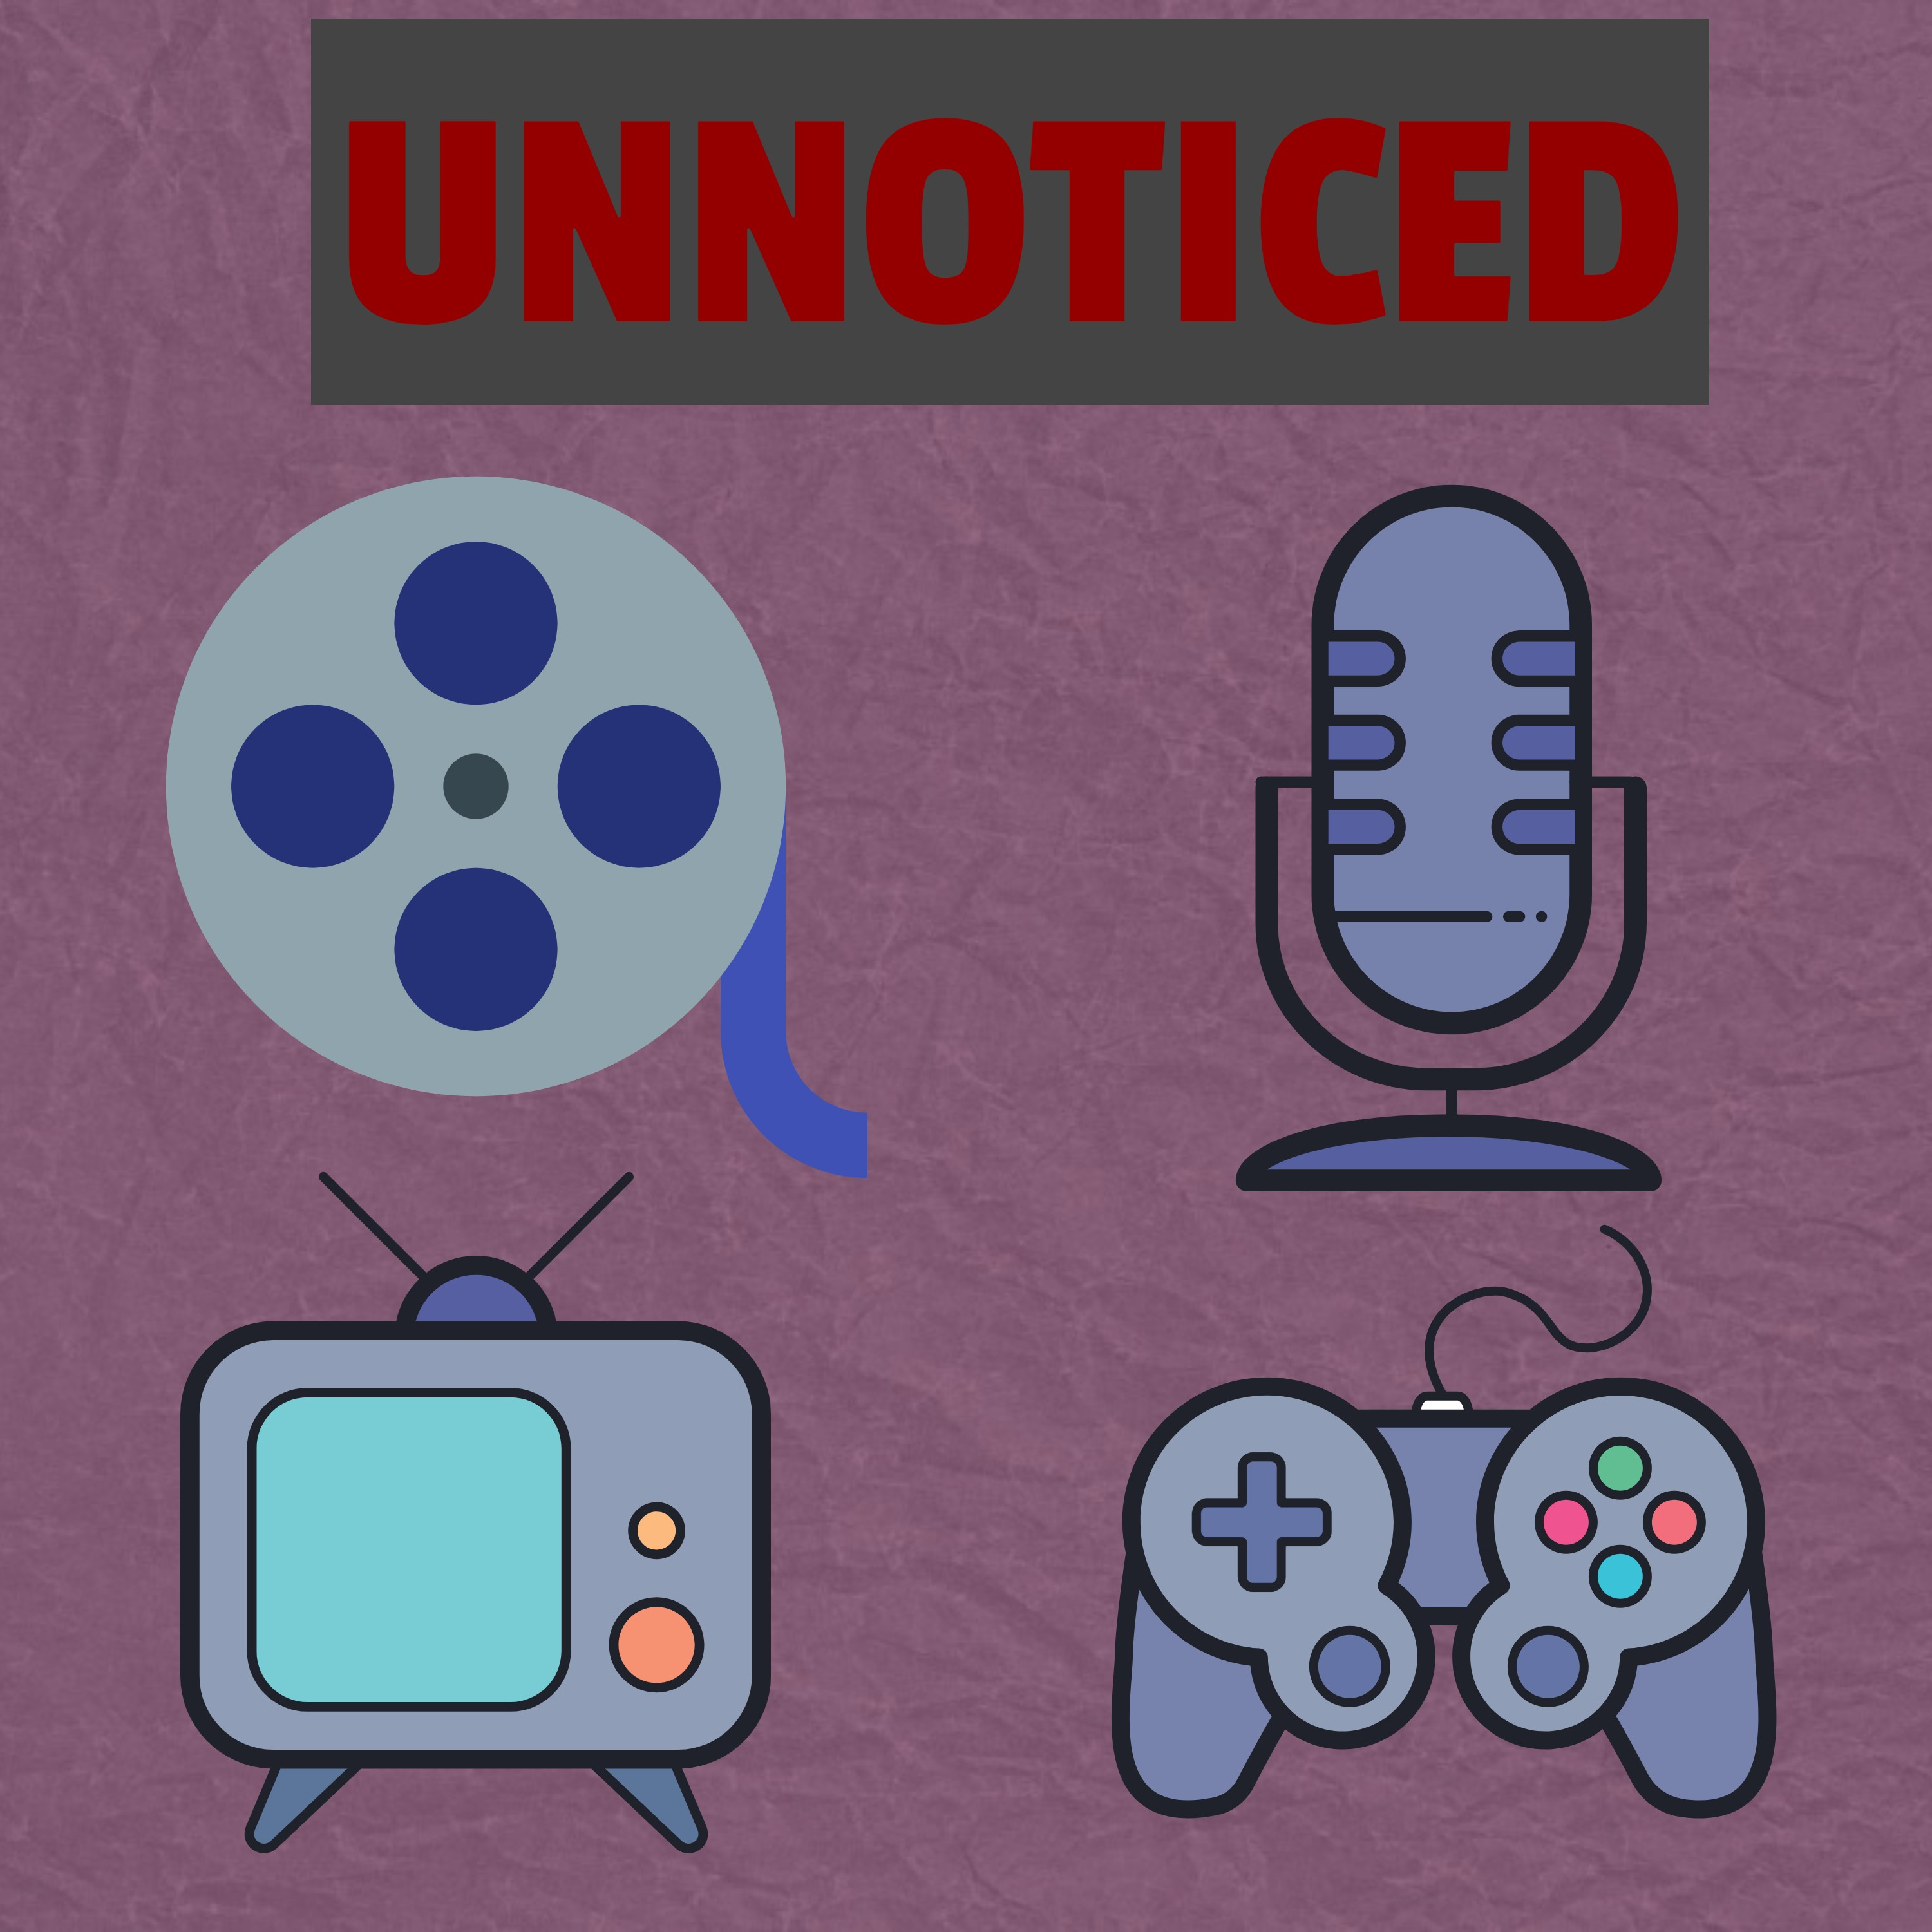 Unnoticed Podcast show image